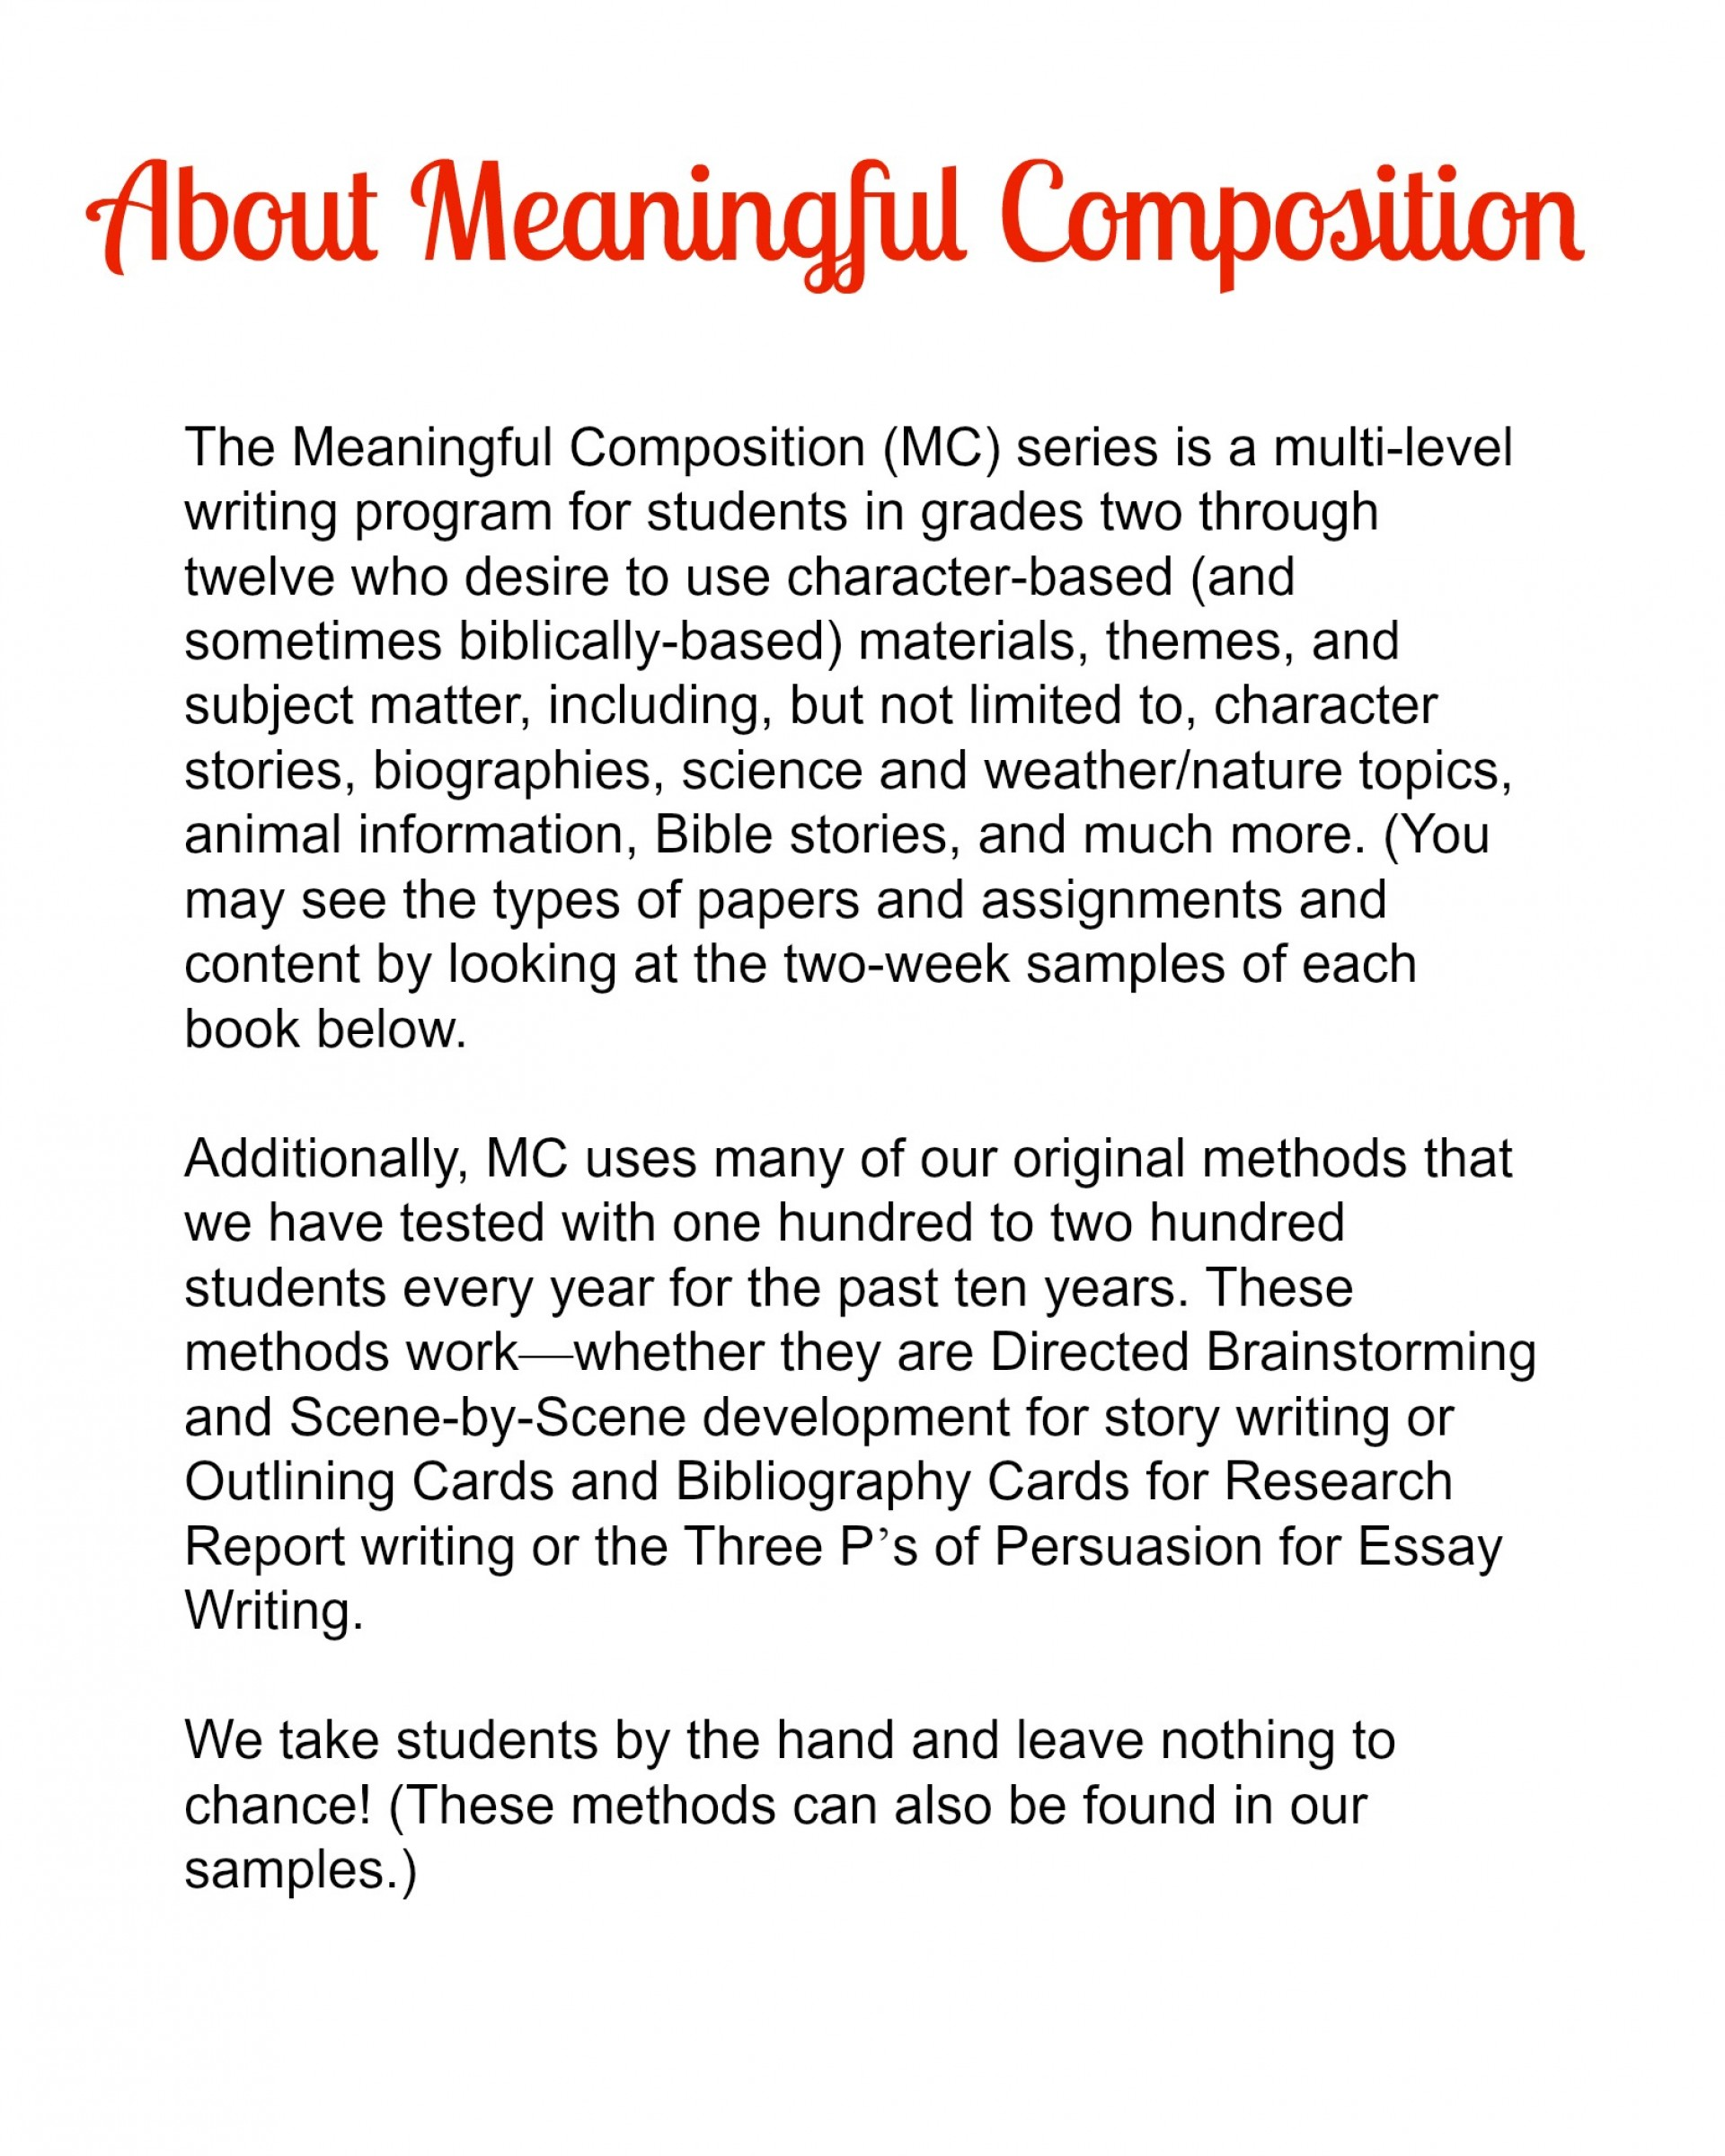 025 Expository Essays Of Introductions Creative Writing Course Paragraph Persuasive On Bullying About Meaningful Compos Cyber How To Prevent Five Stupendous Examples For 5th Grade Essay 11 High School Pdf 1920